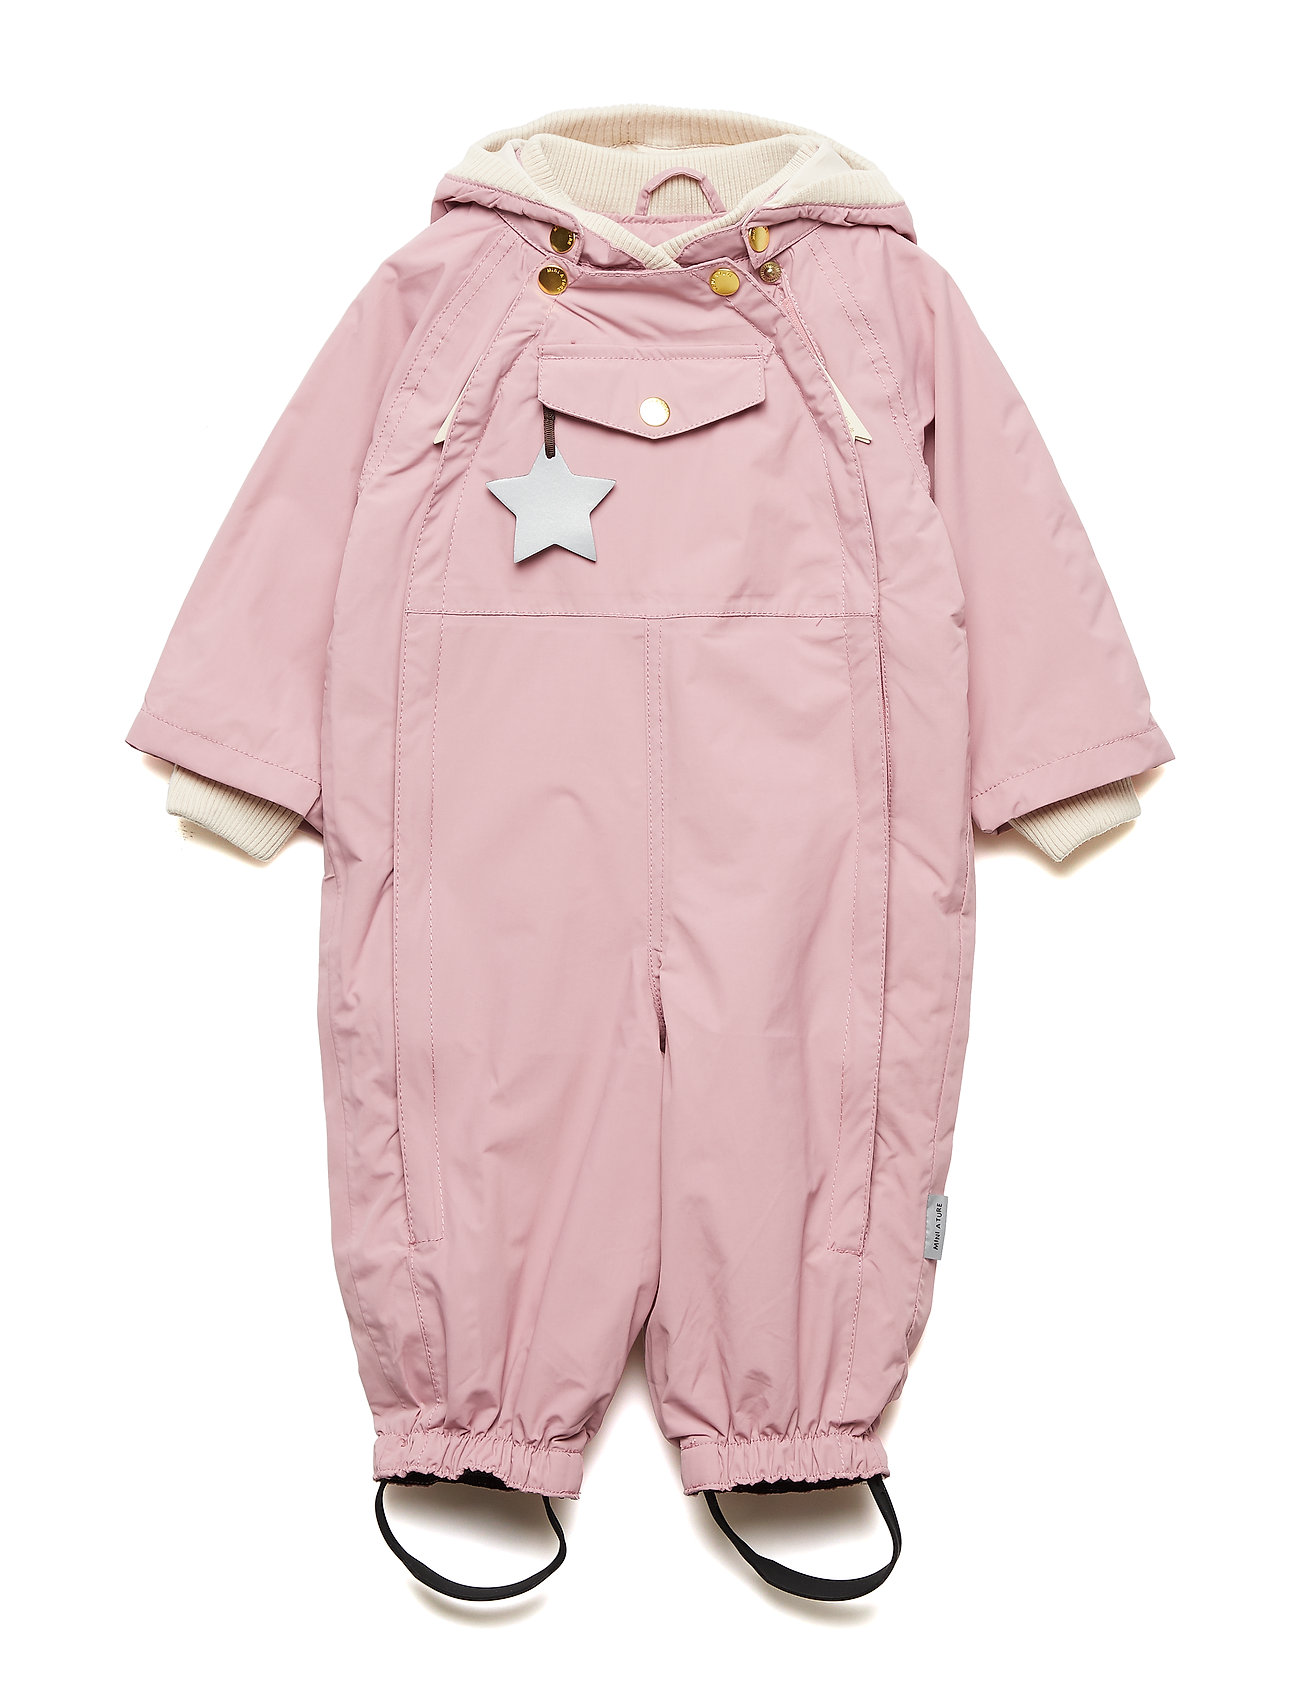 Mini A Ture Wisto Suit, M